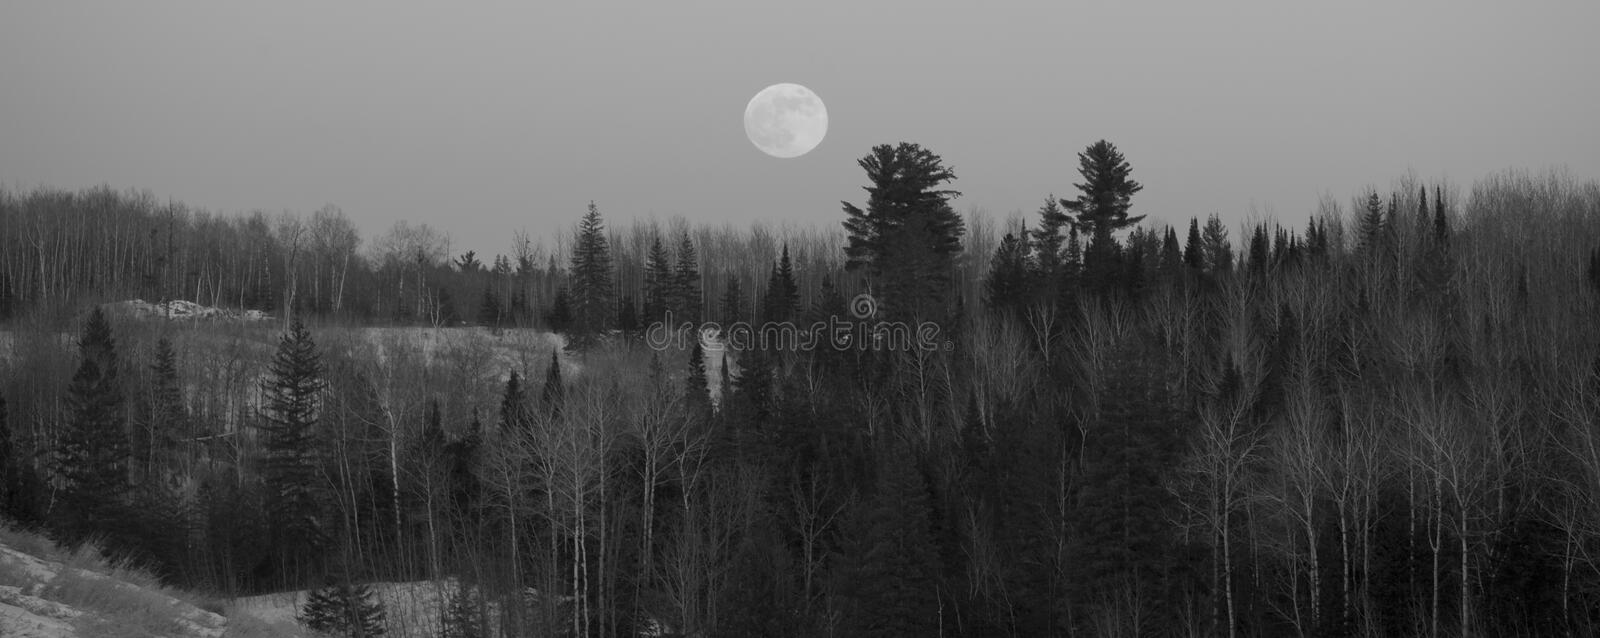 Download Full Moon Over Forested Hills Stock Image - Image: 7835477